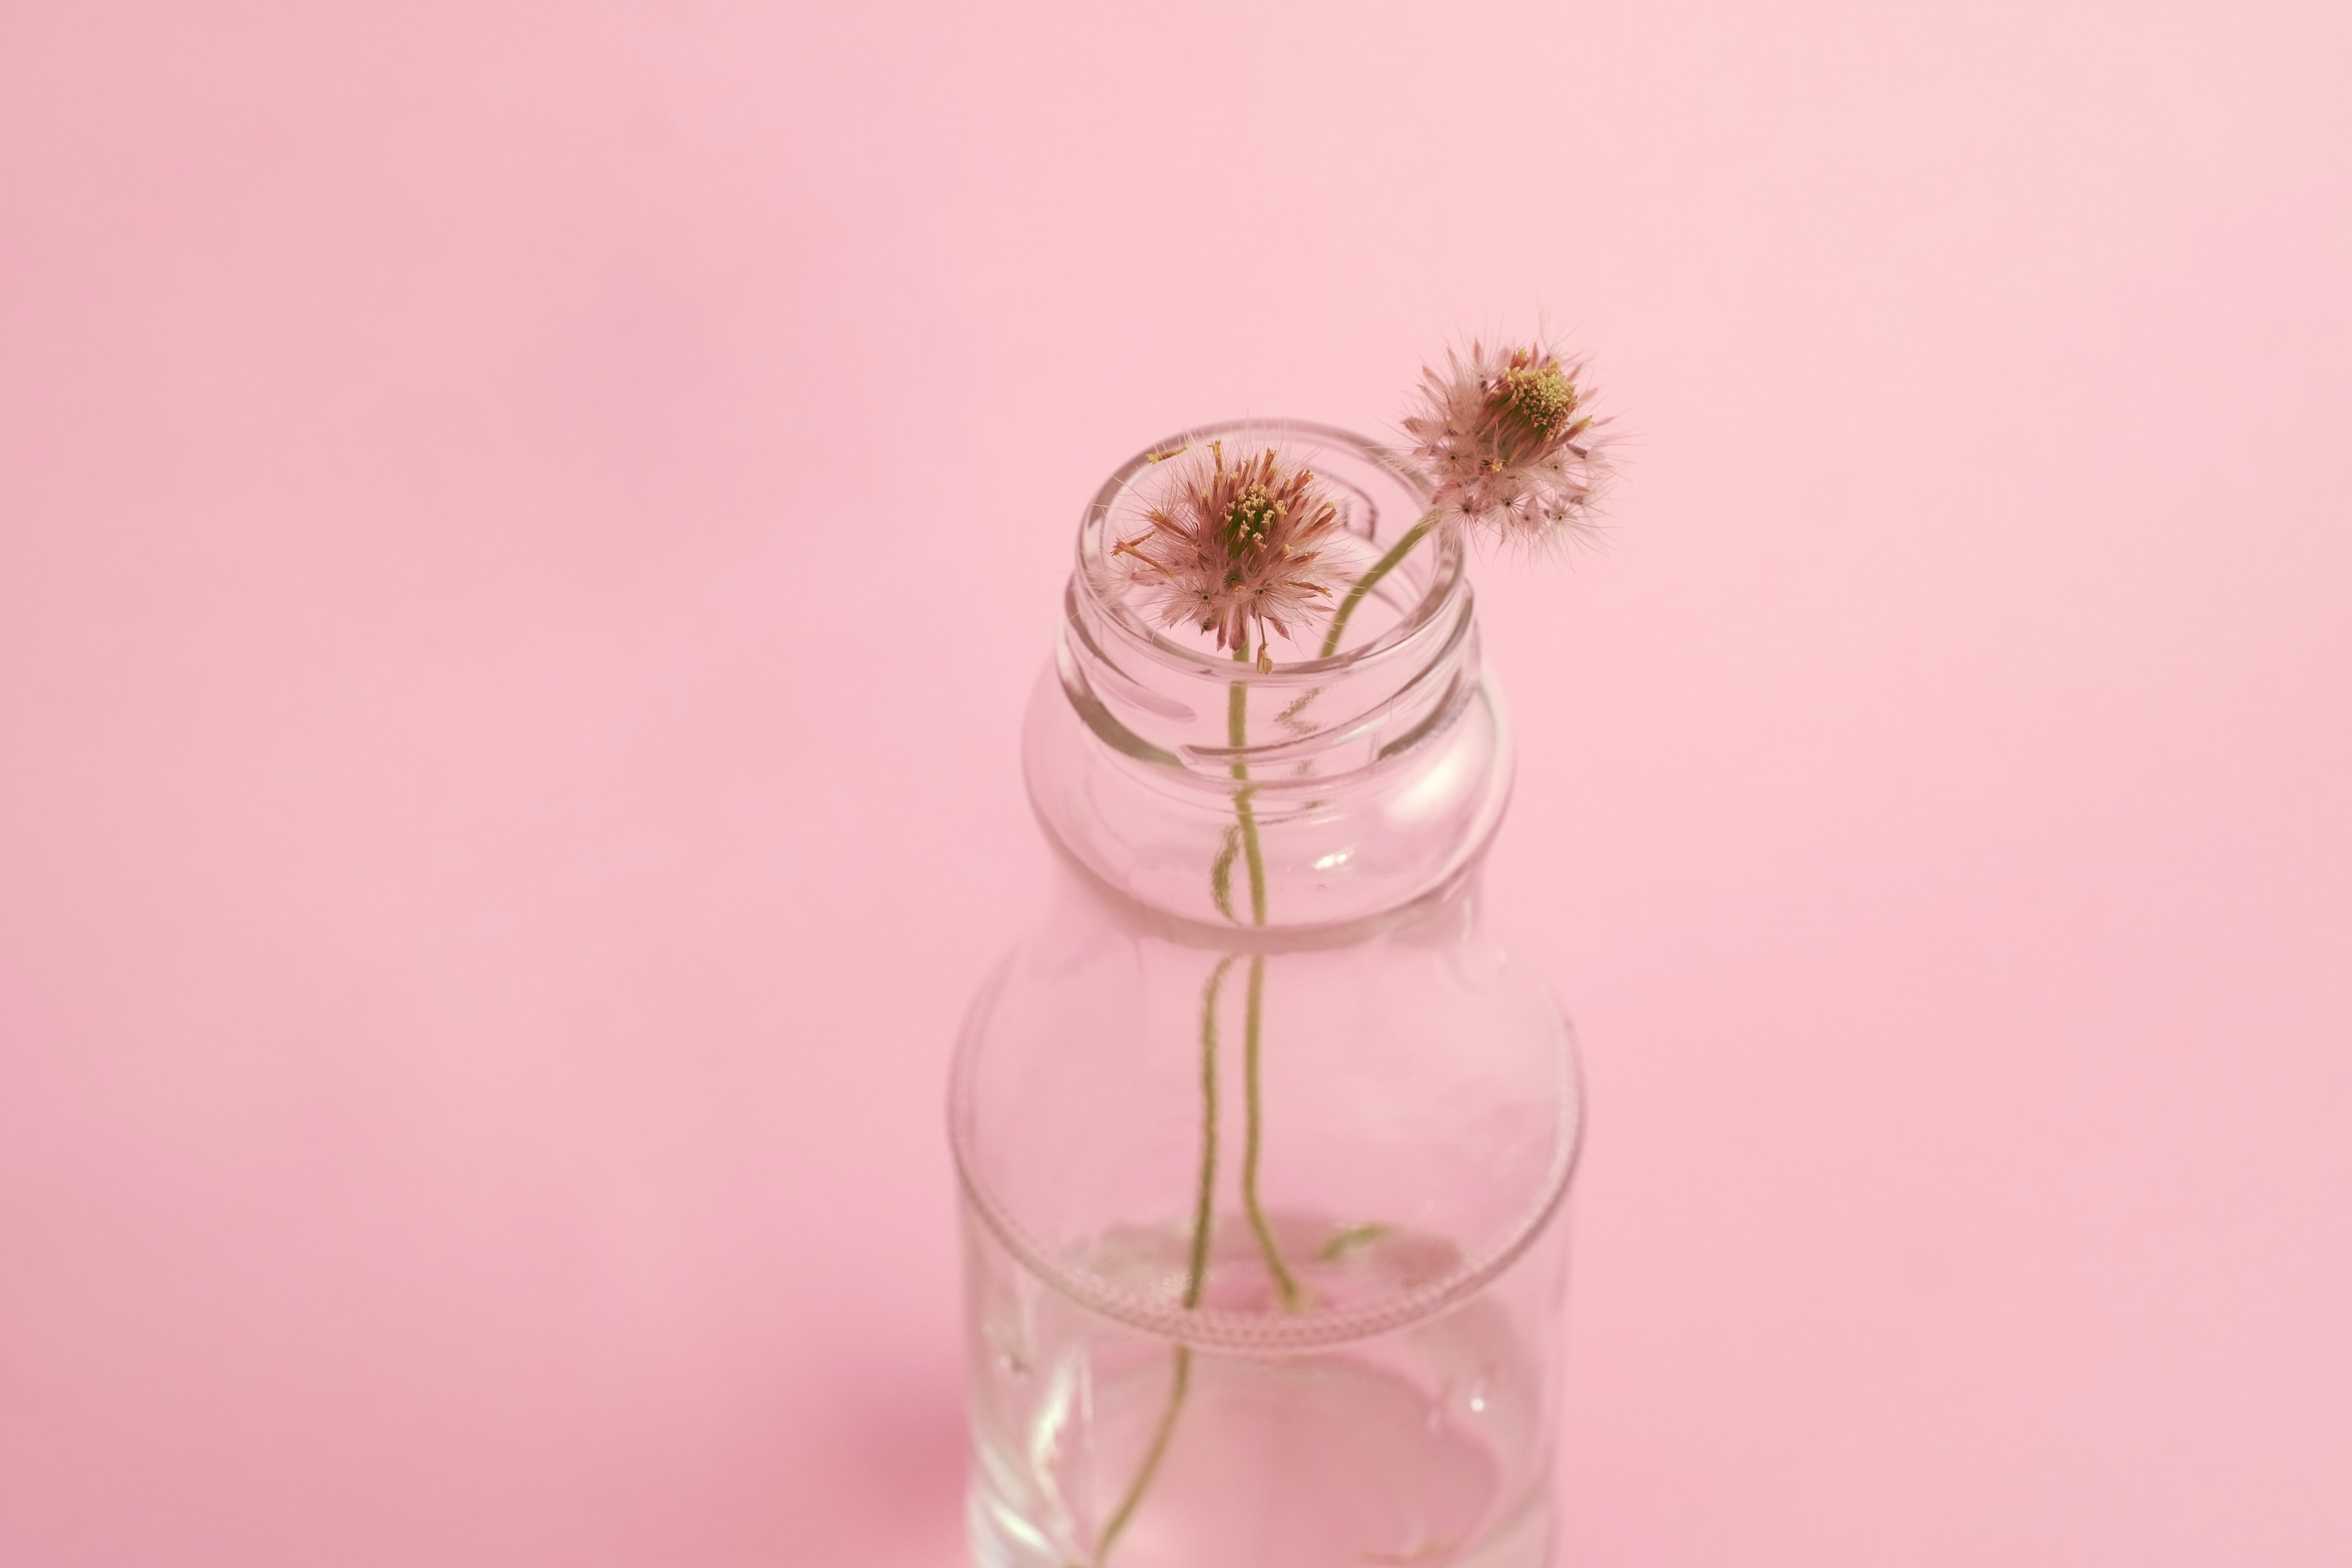 two wilted dandelion flowers on clear glass vase